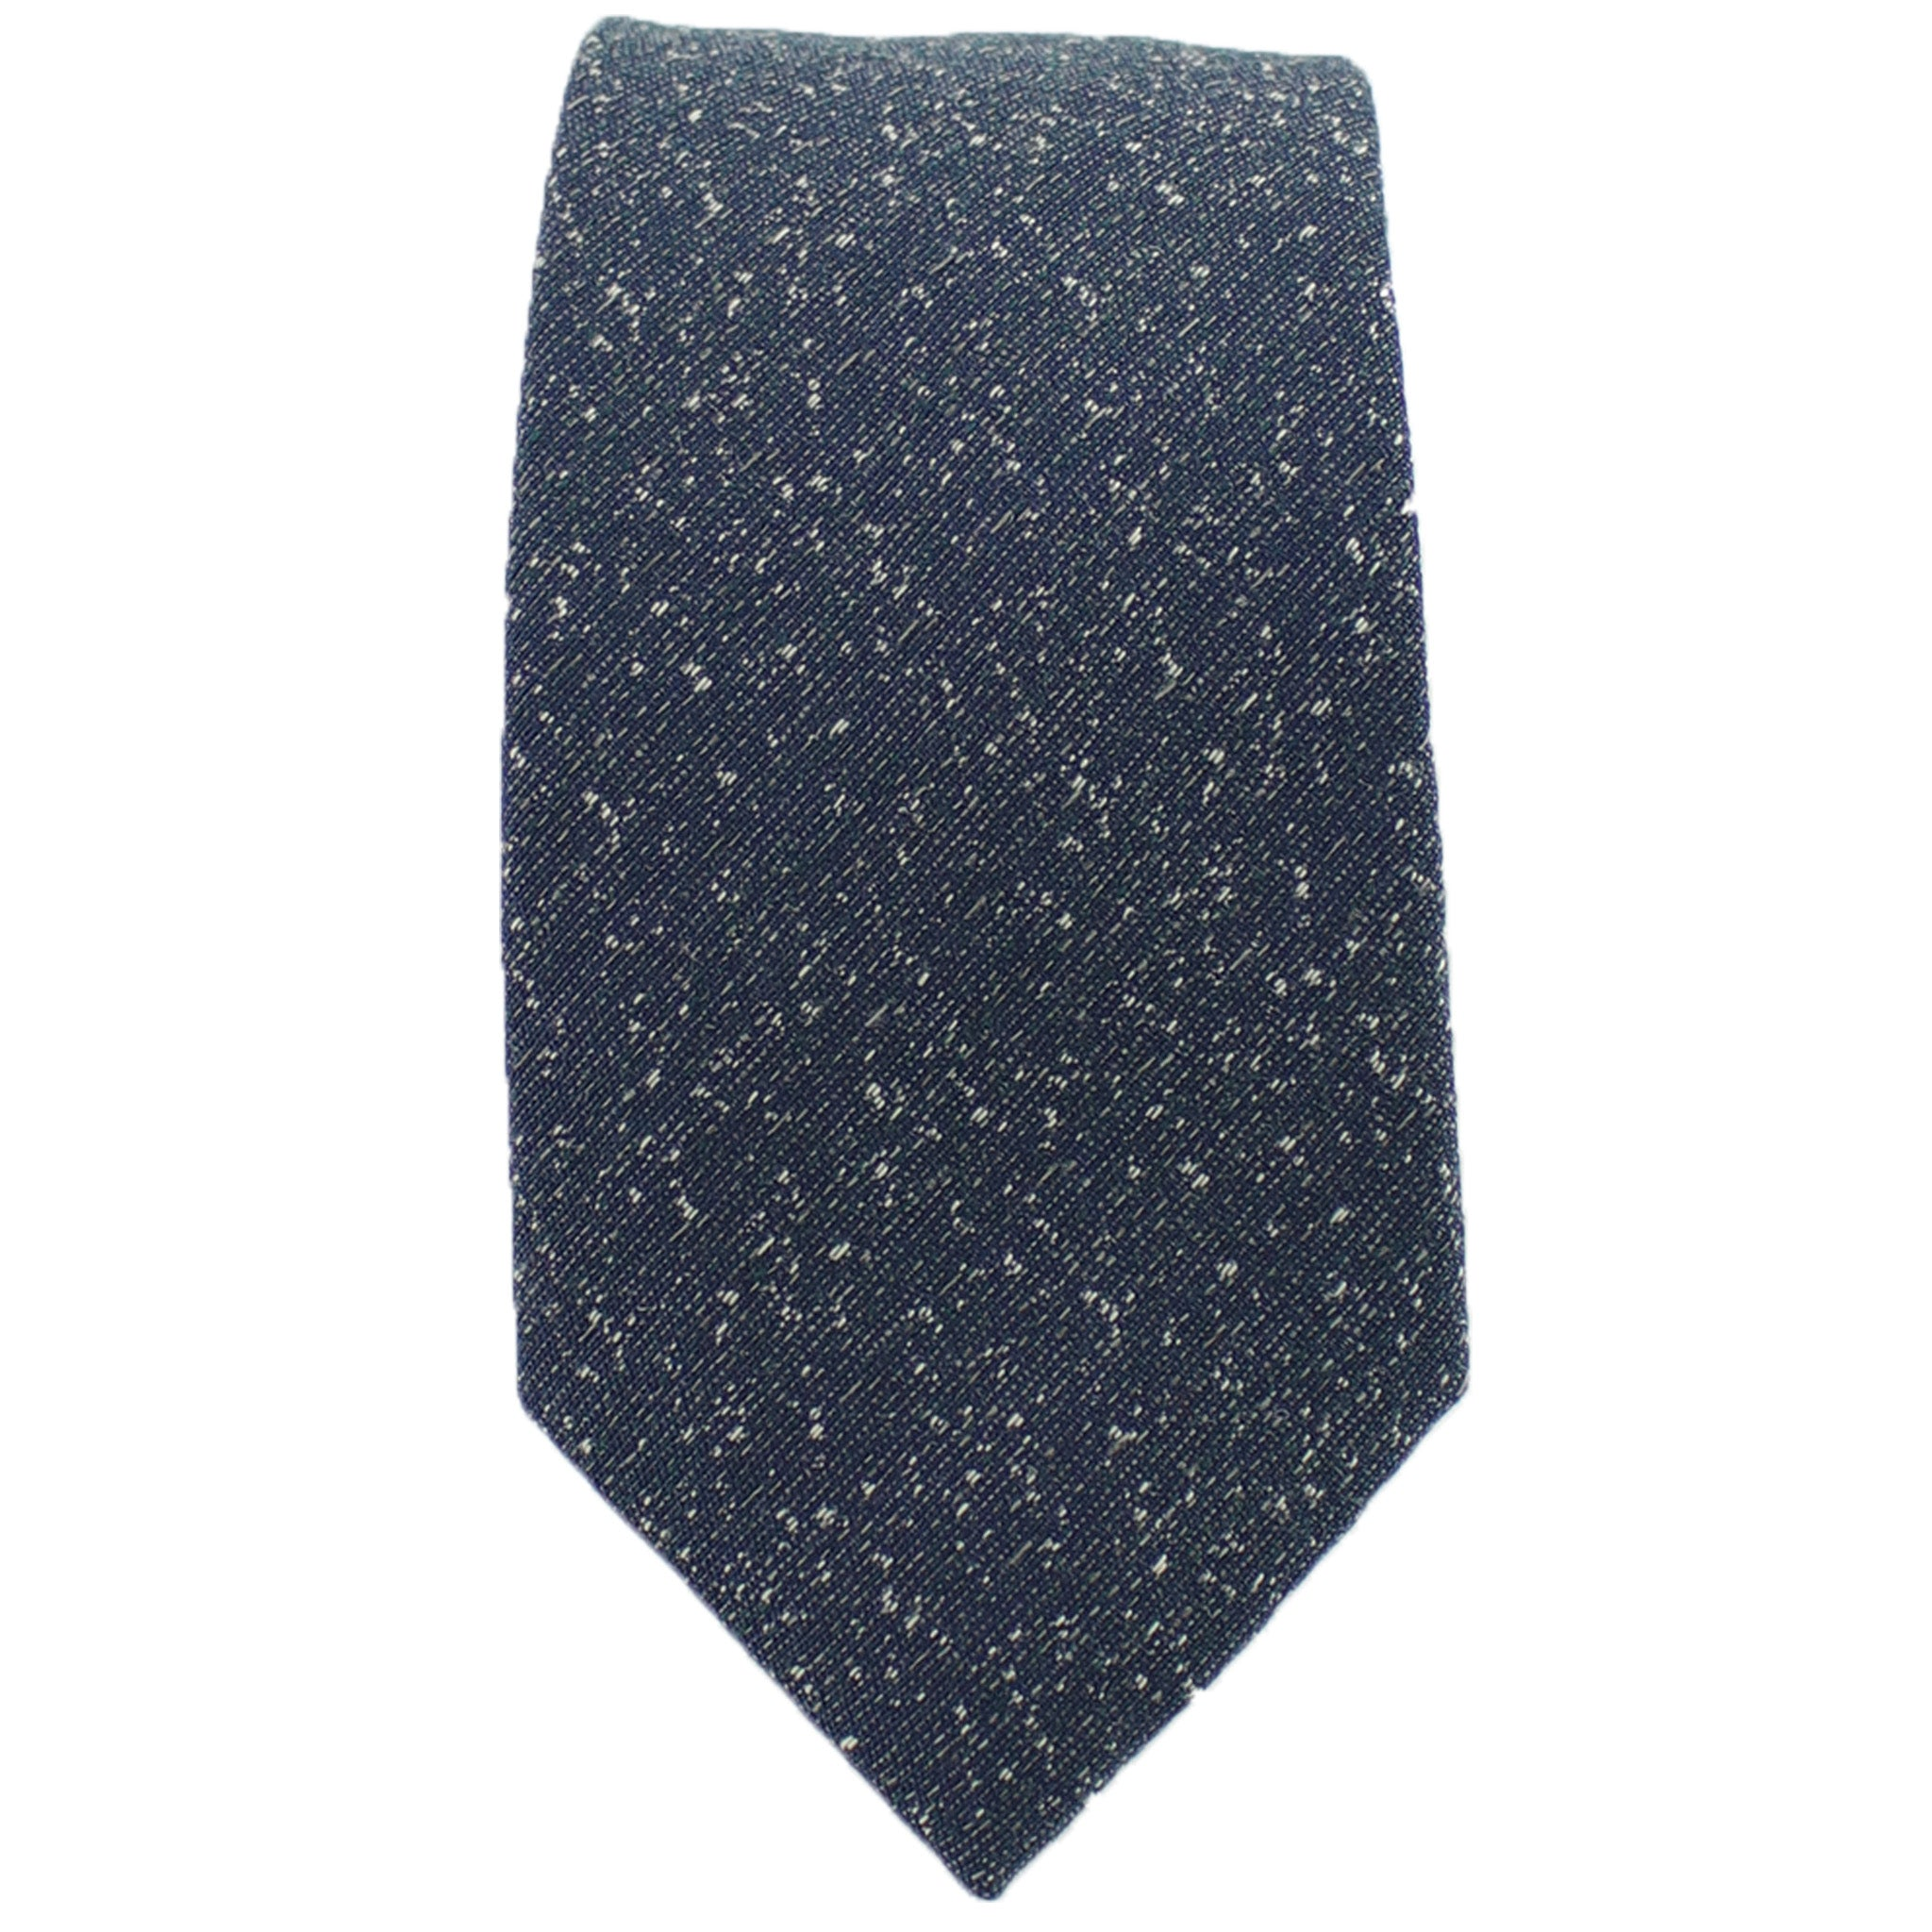 Dark Teal Speck Tie from DIBI